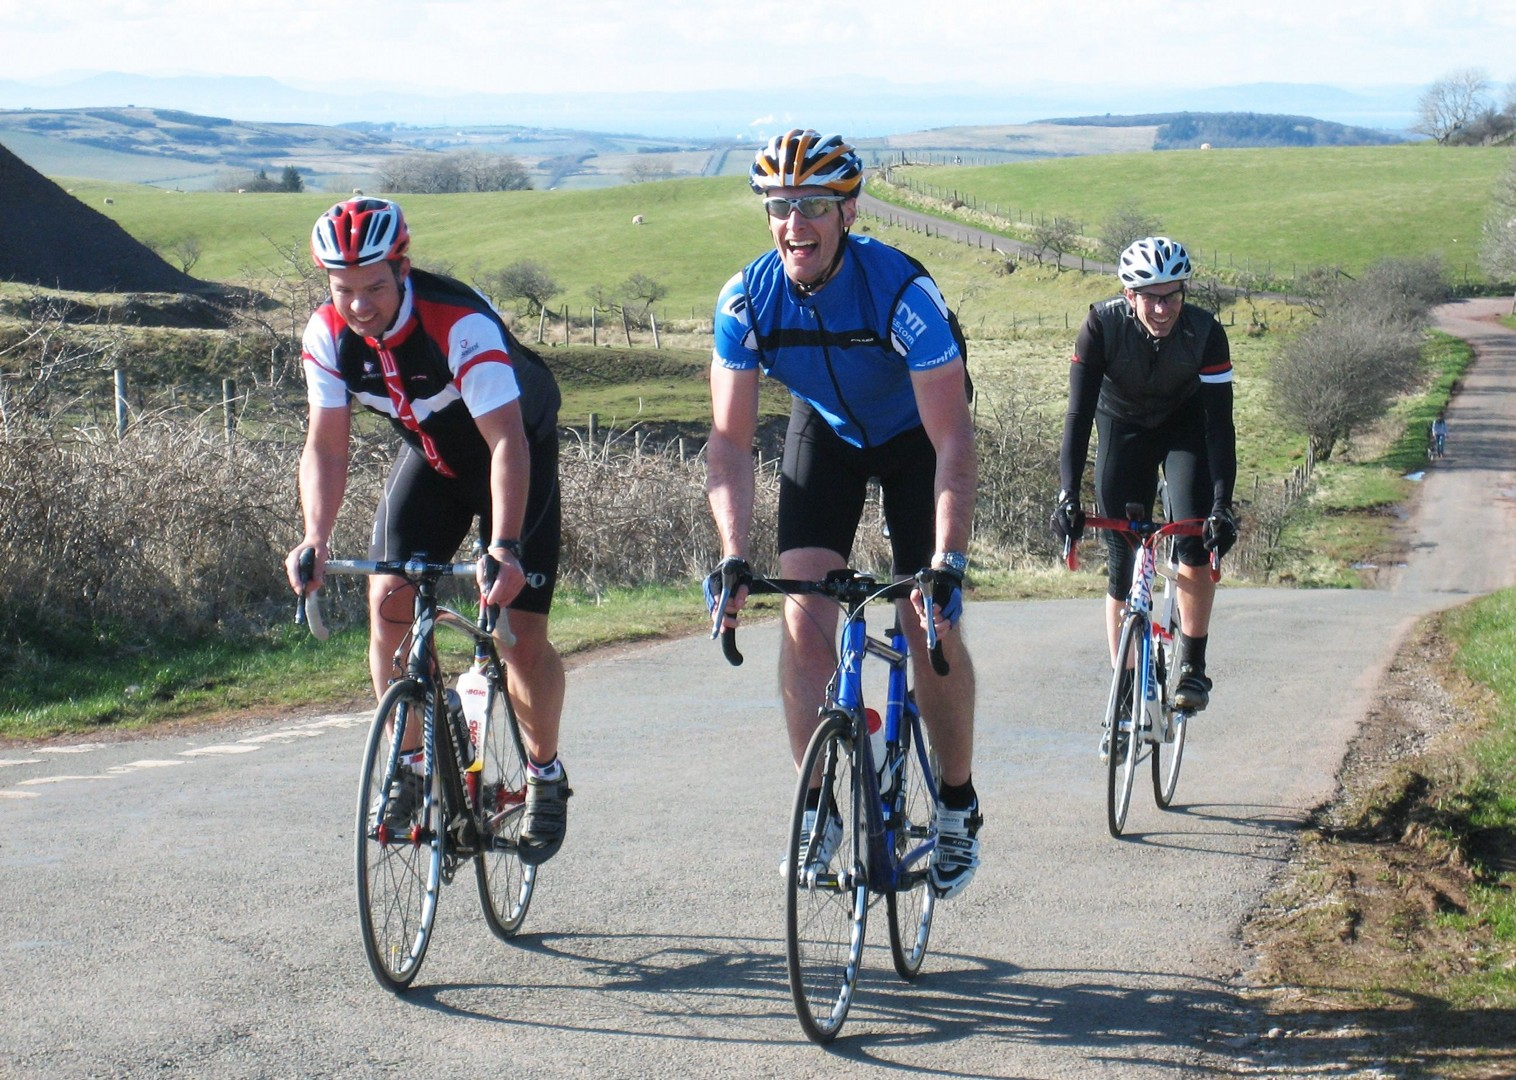 _Staff.178.9755.jpg - UK - Lake District Classic Passes - Guided Road Cycling Weekend - Road Cycling